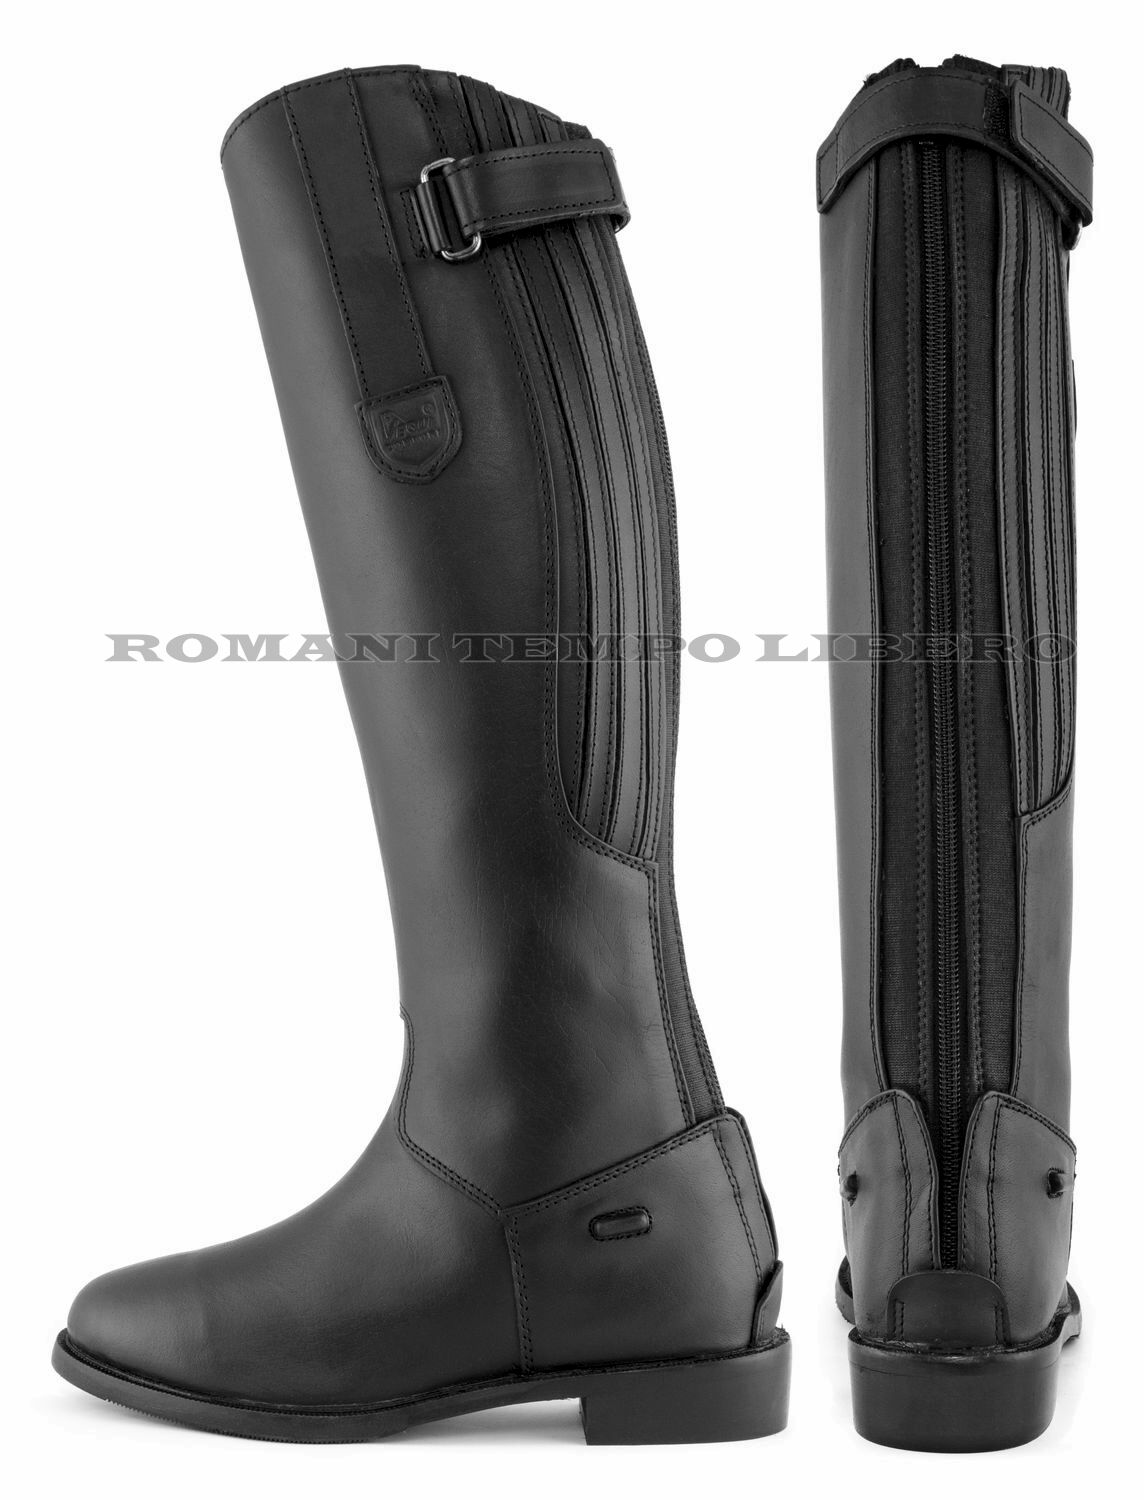 Riding boots on the  skin with zipper rear elastic  supply quality product